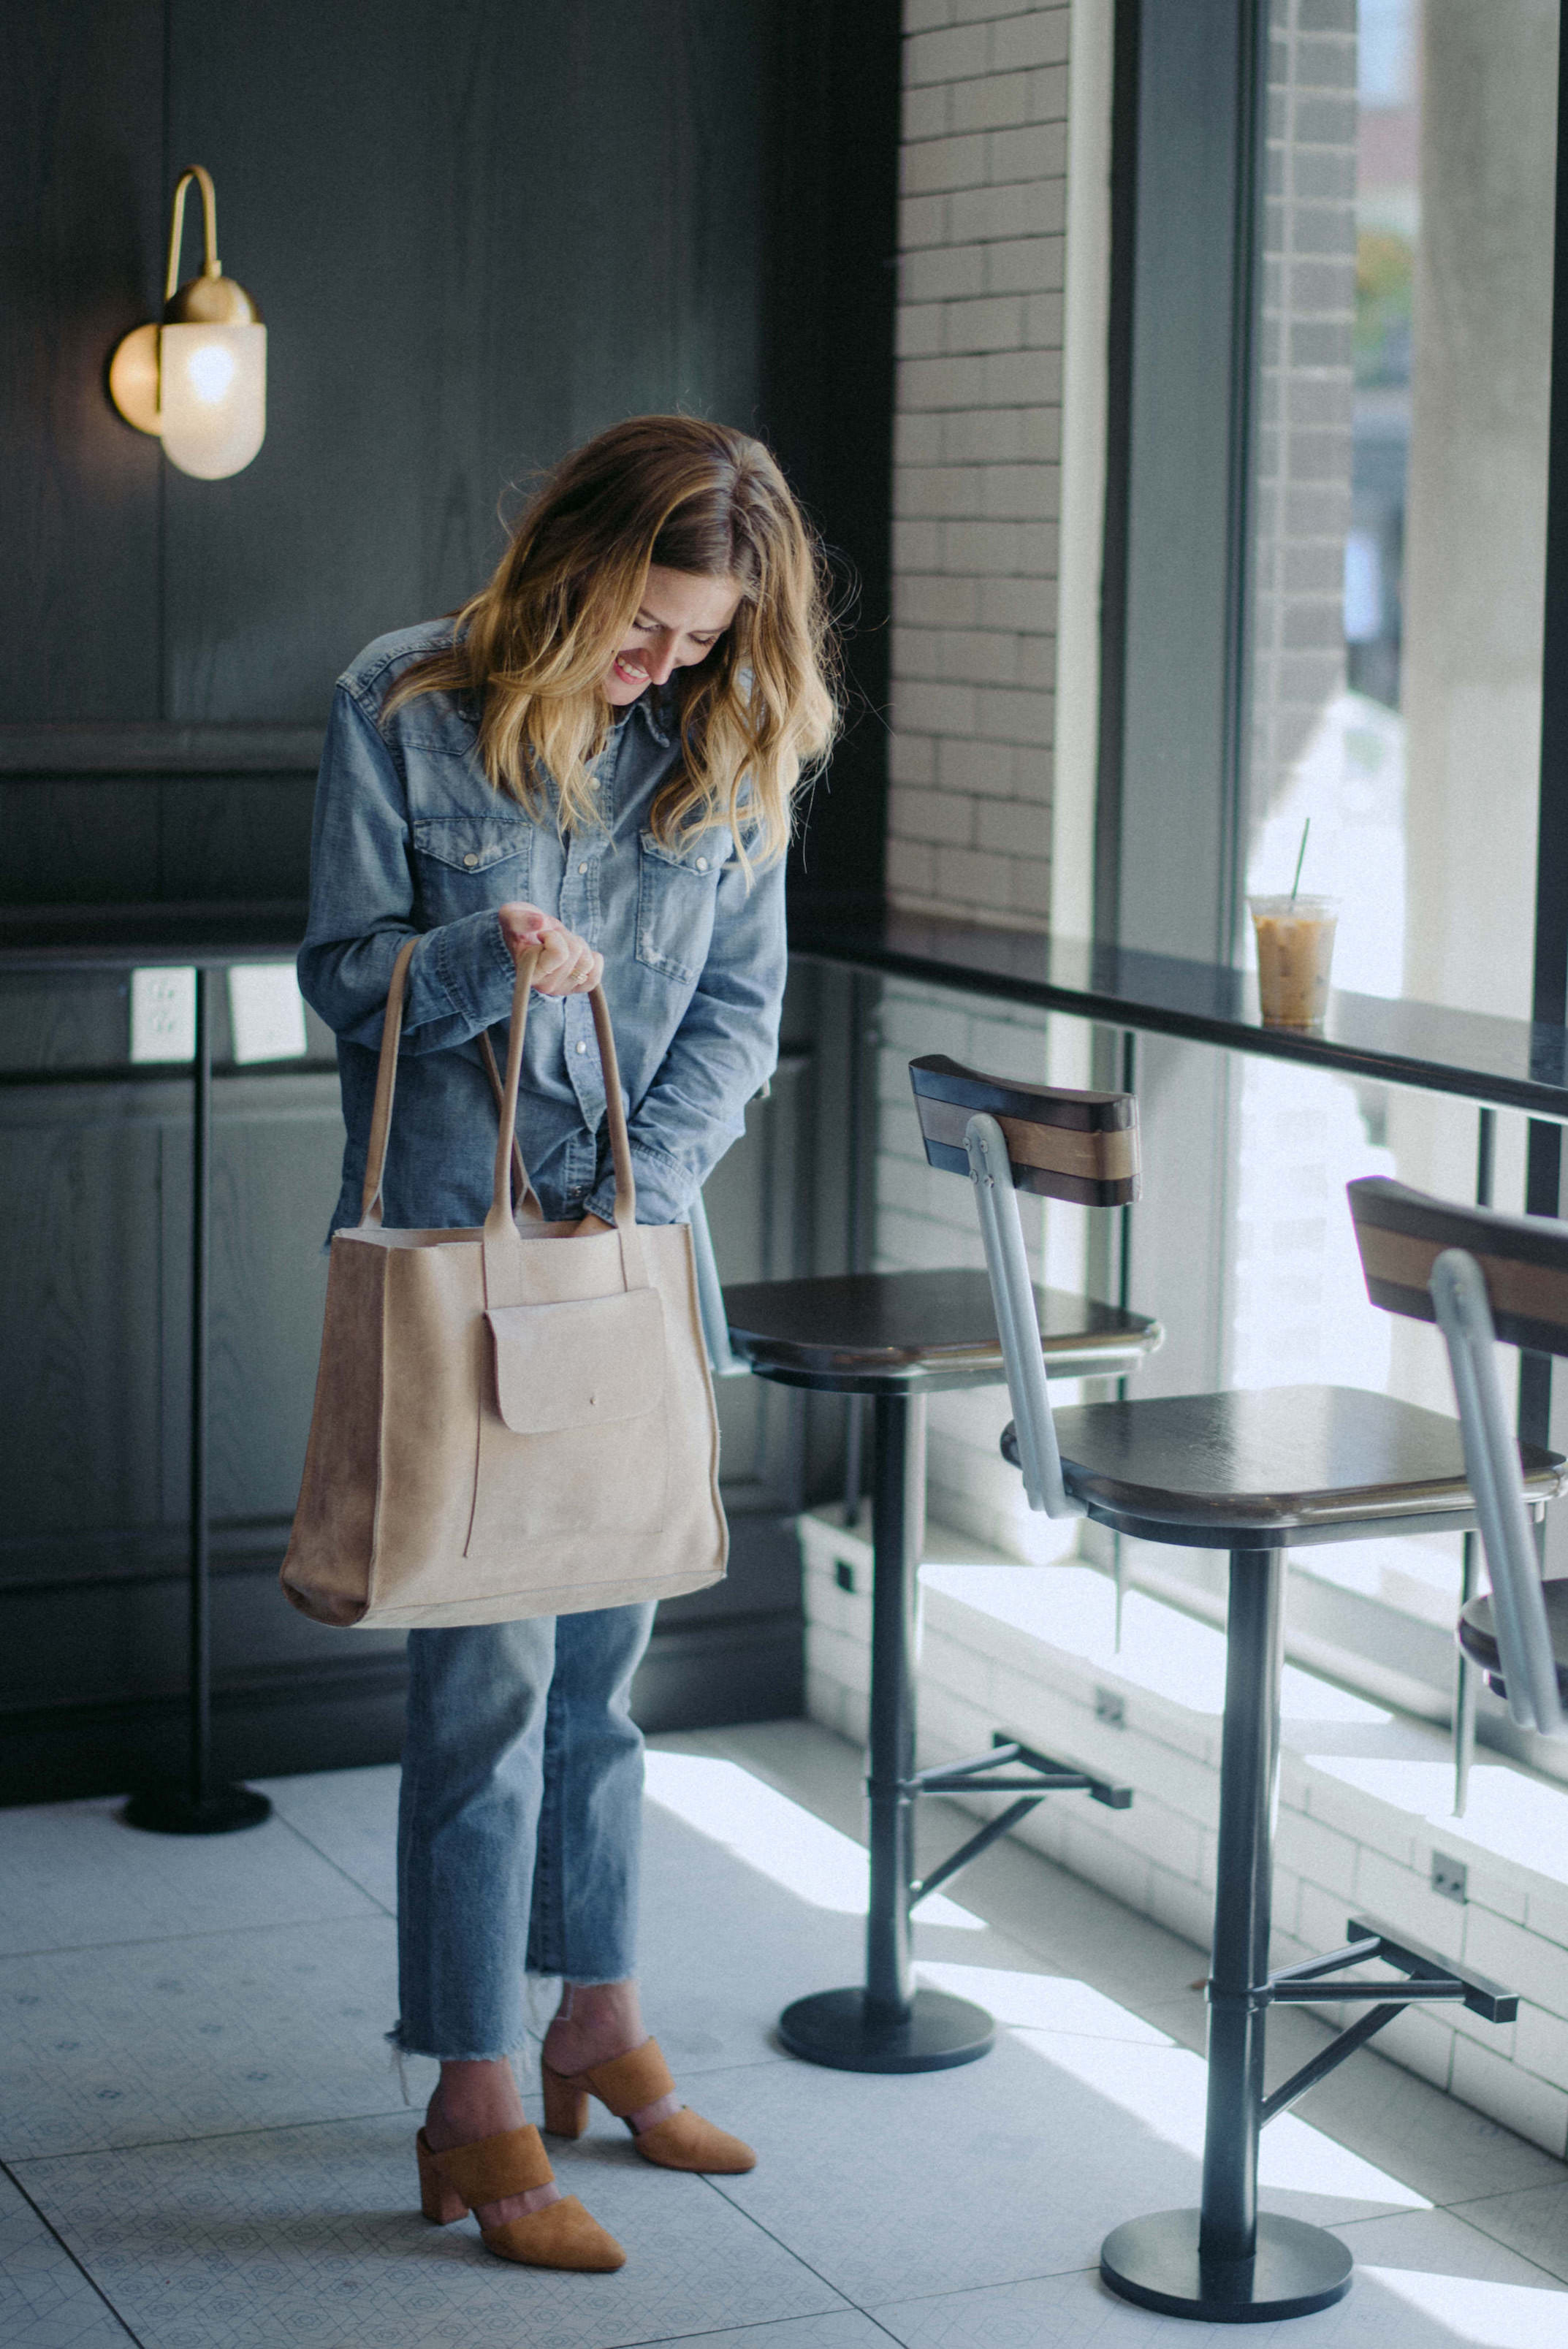 All denim outfit // A Week Of  Nashville-Chic Ethical Outfits With Jordan Soderholm, Fashion Director At ABLE on The Good Trade